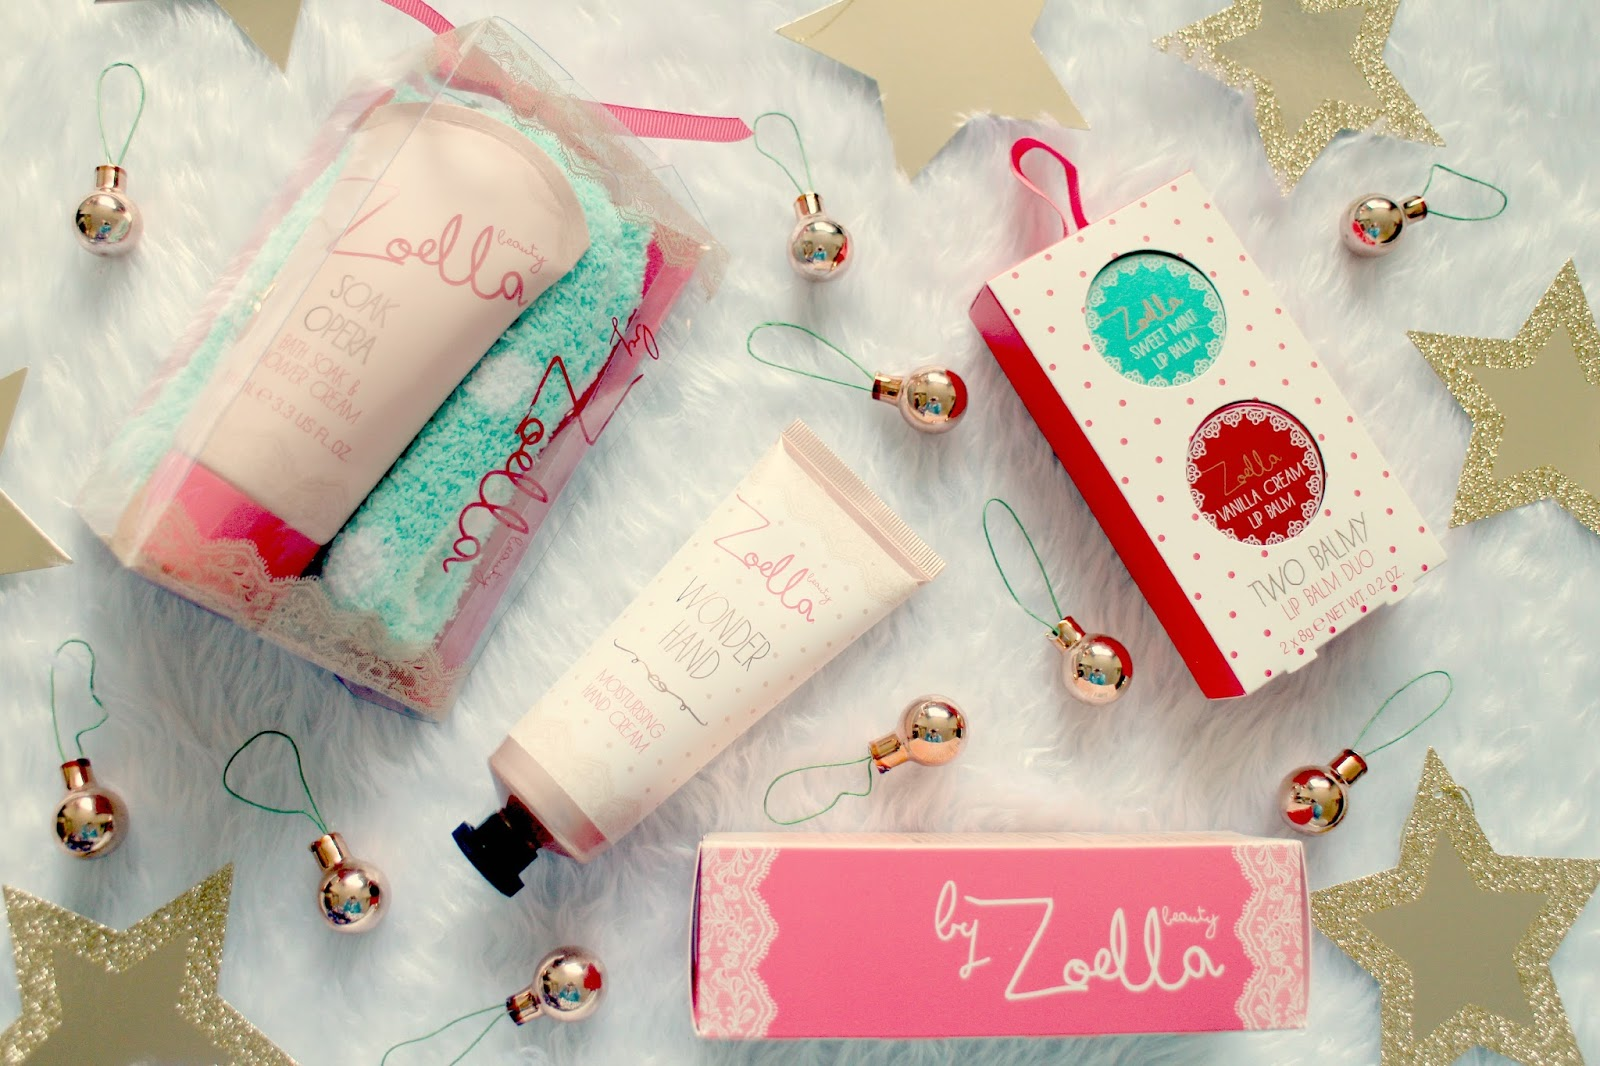 Zoella Beauty Christmas Review